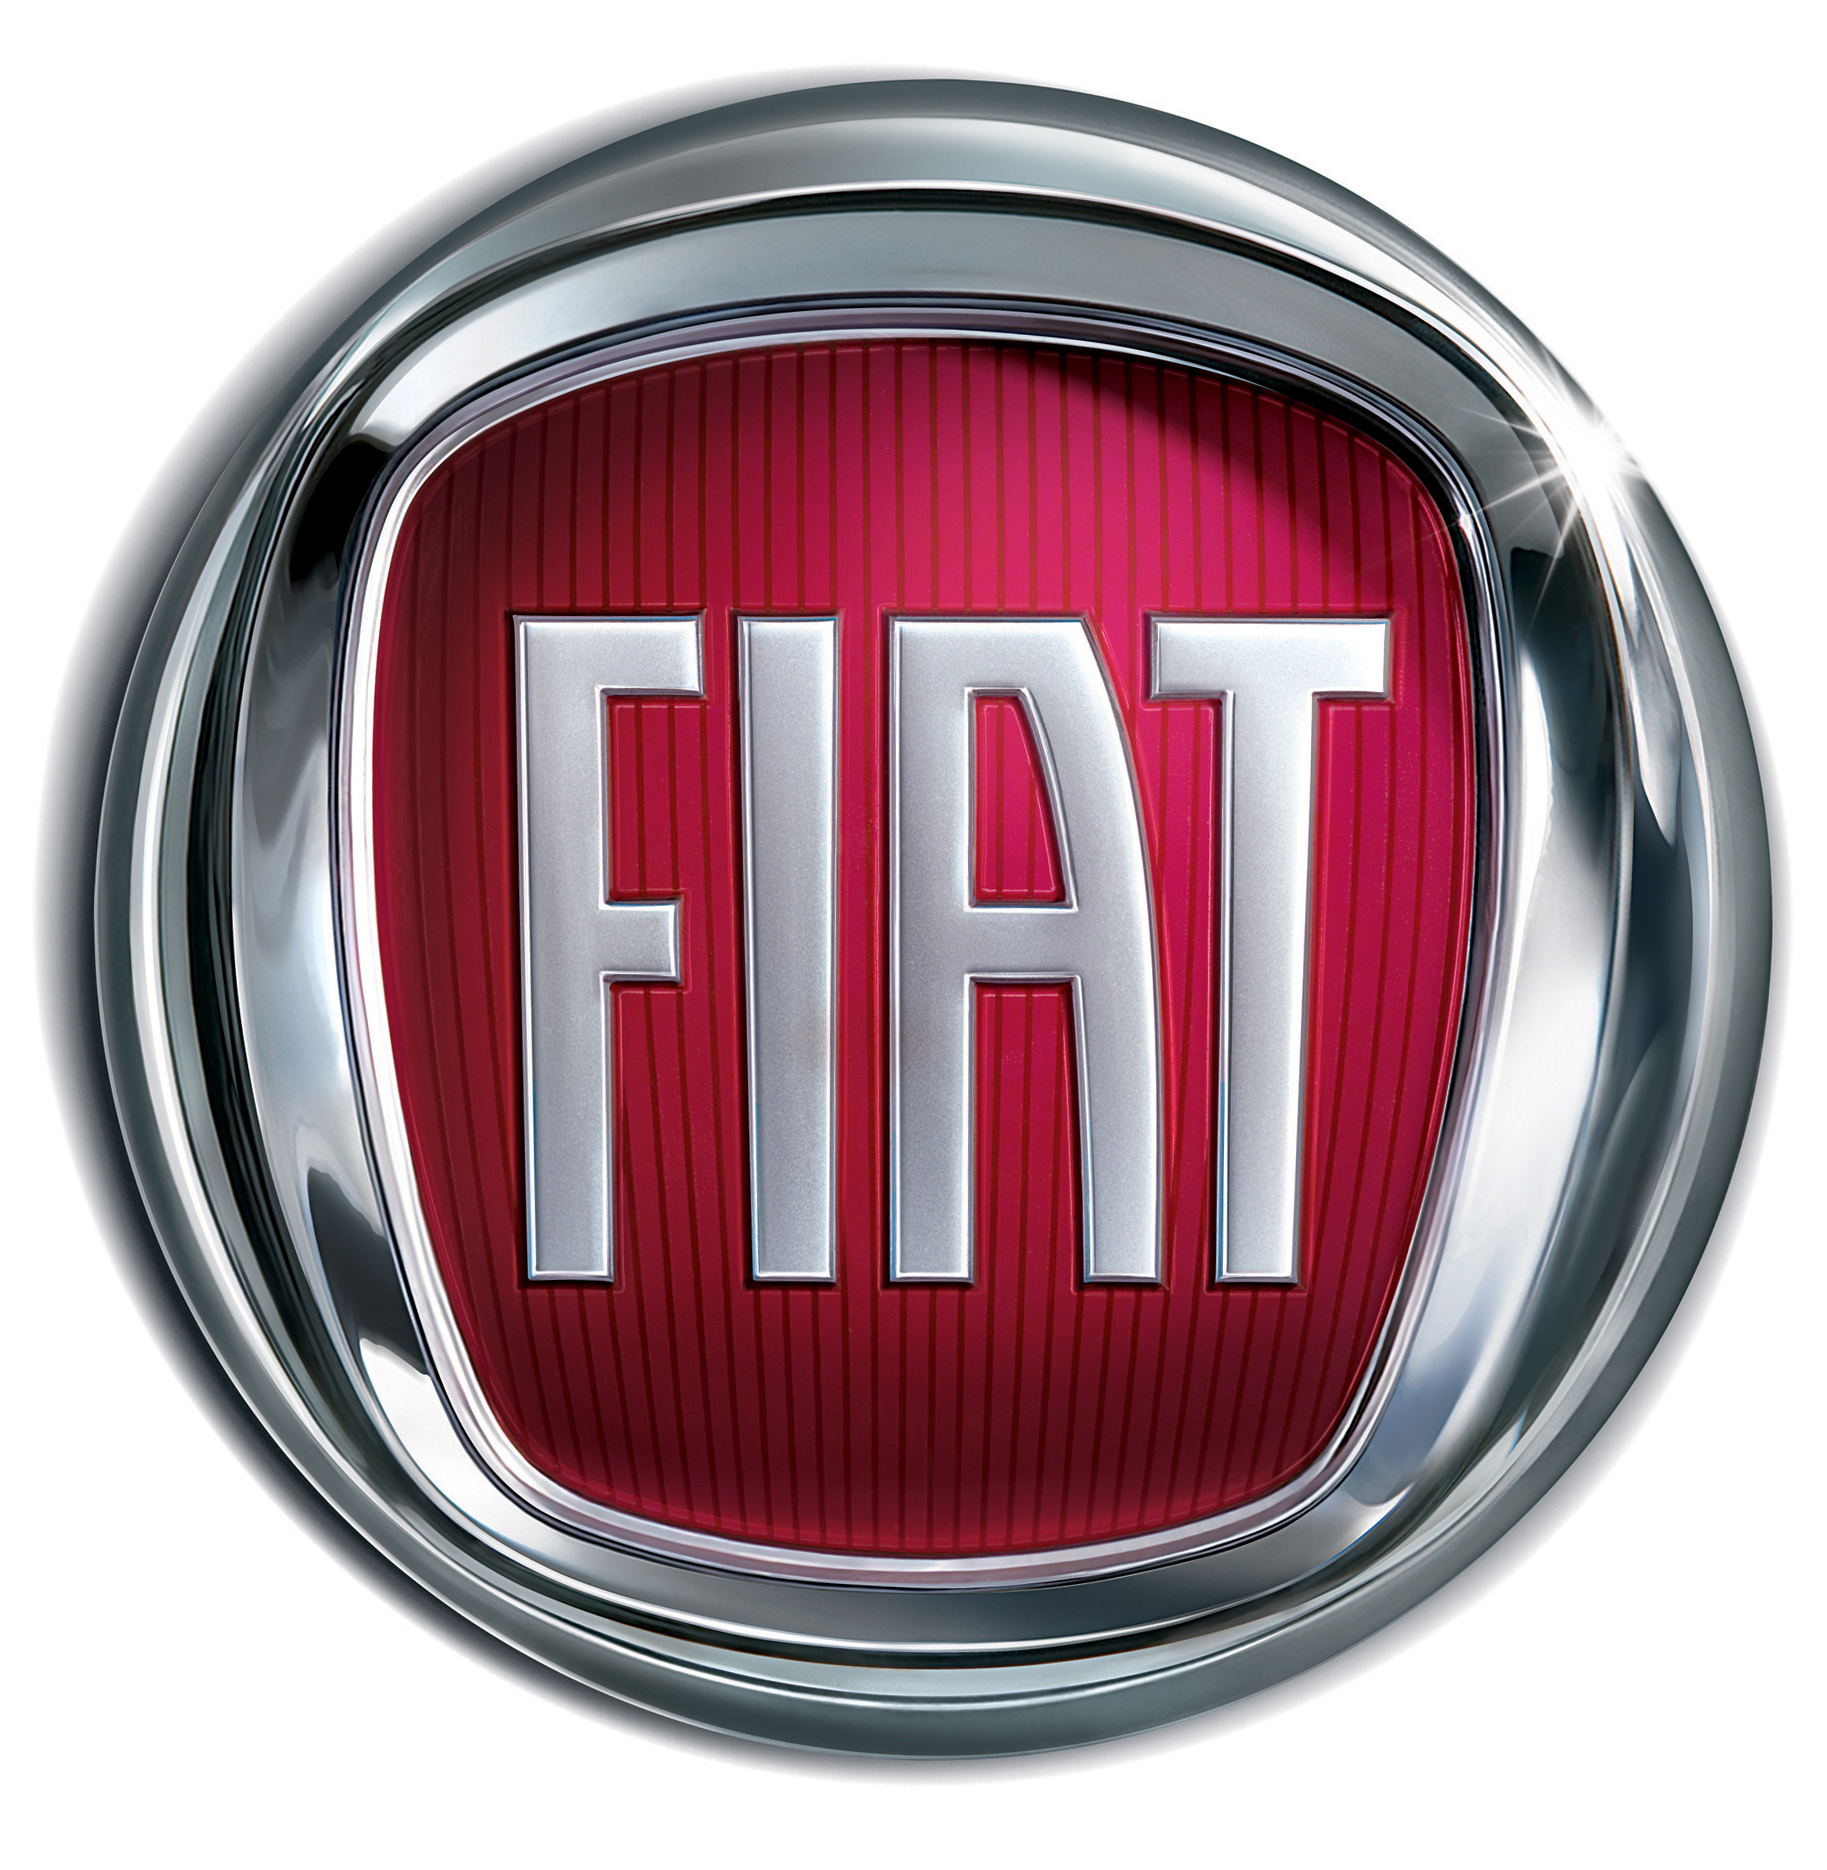 F.I.A.T. The first car